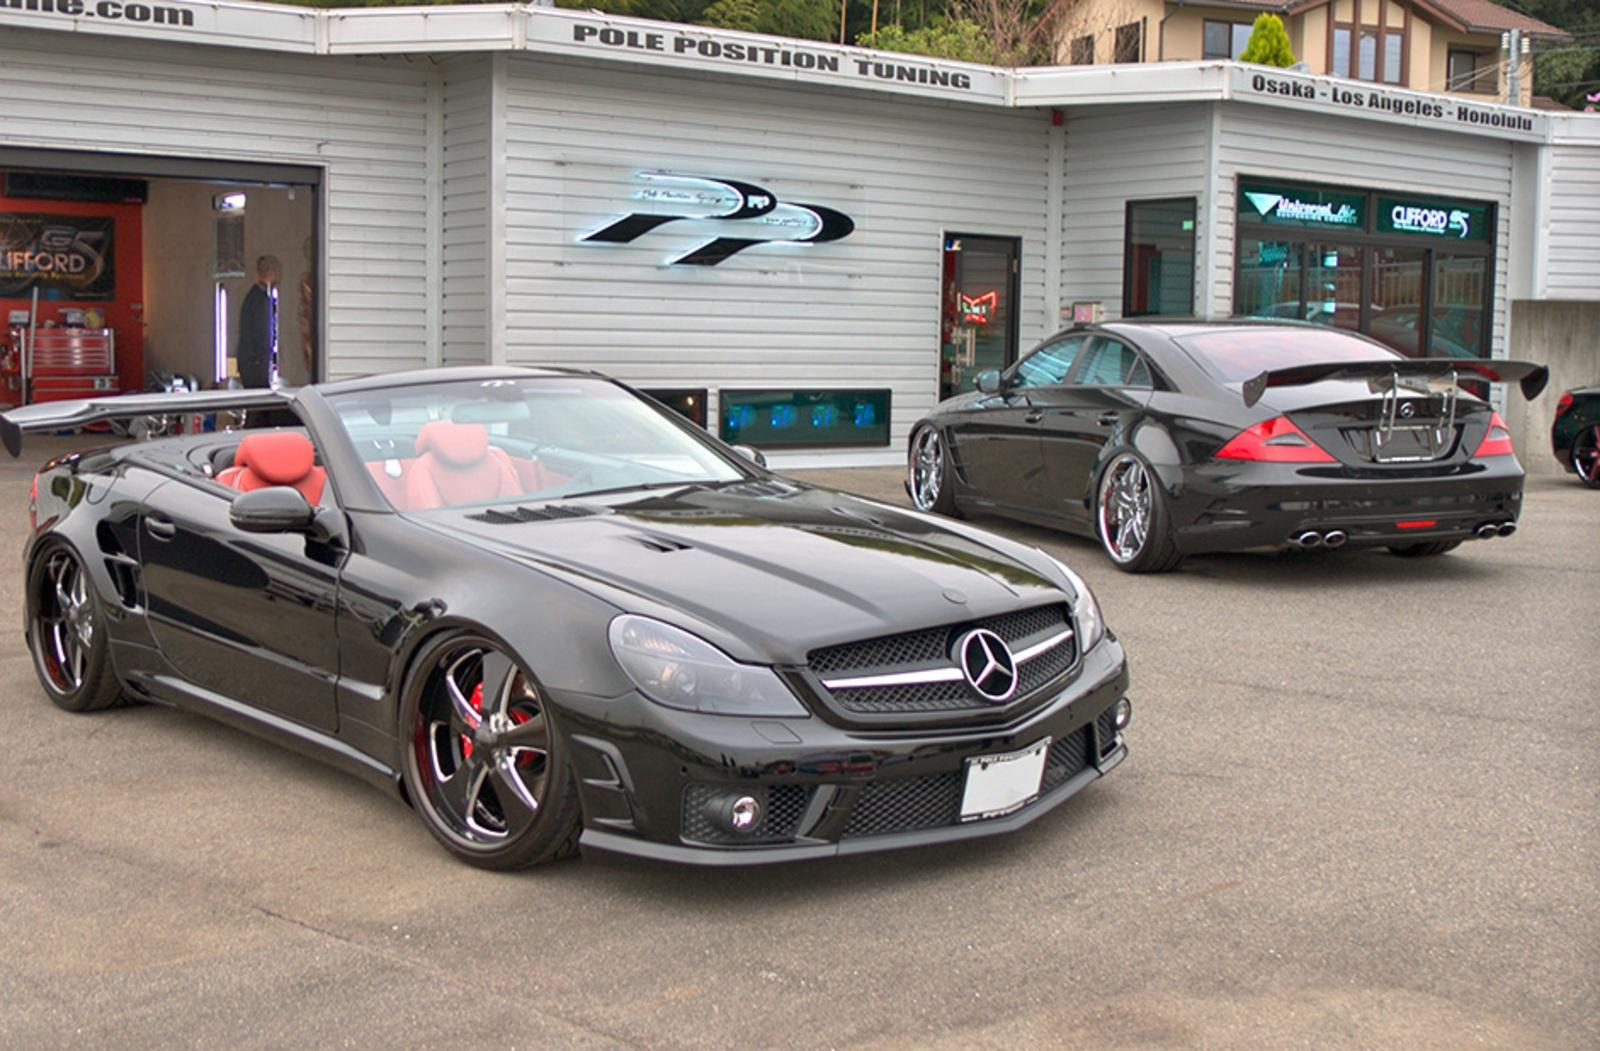 Superior 2011 Mercedes CLS 55 AMG And SL 65 AMG By Pole Position Tuning